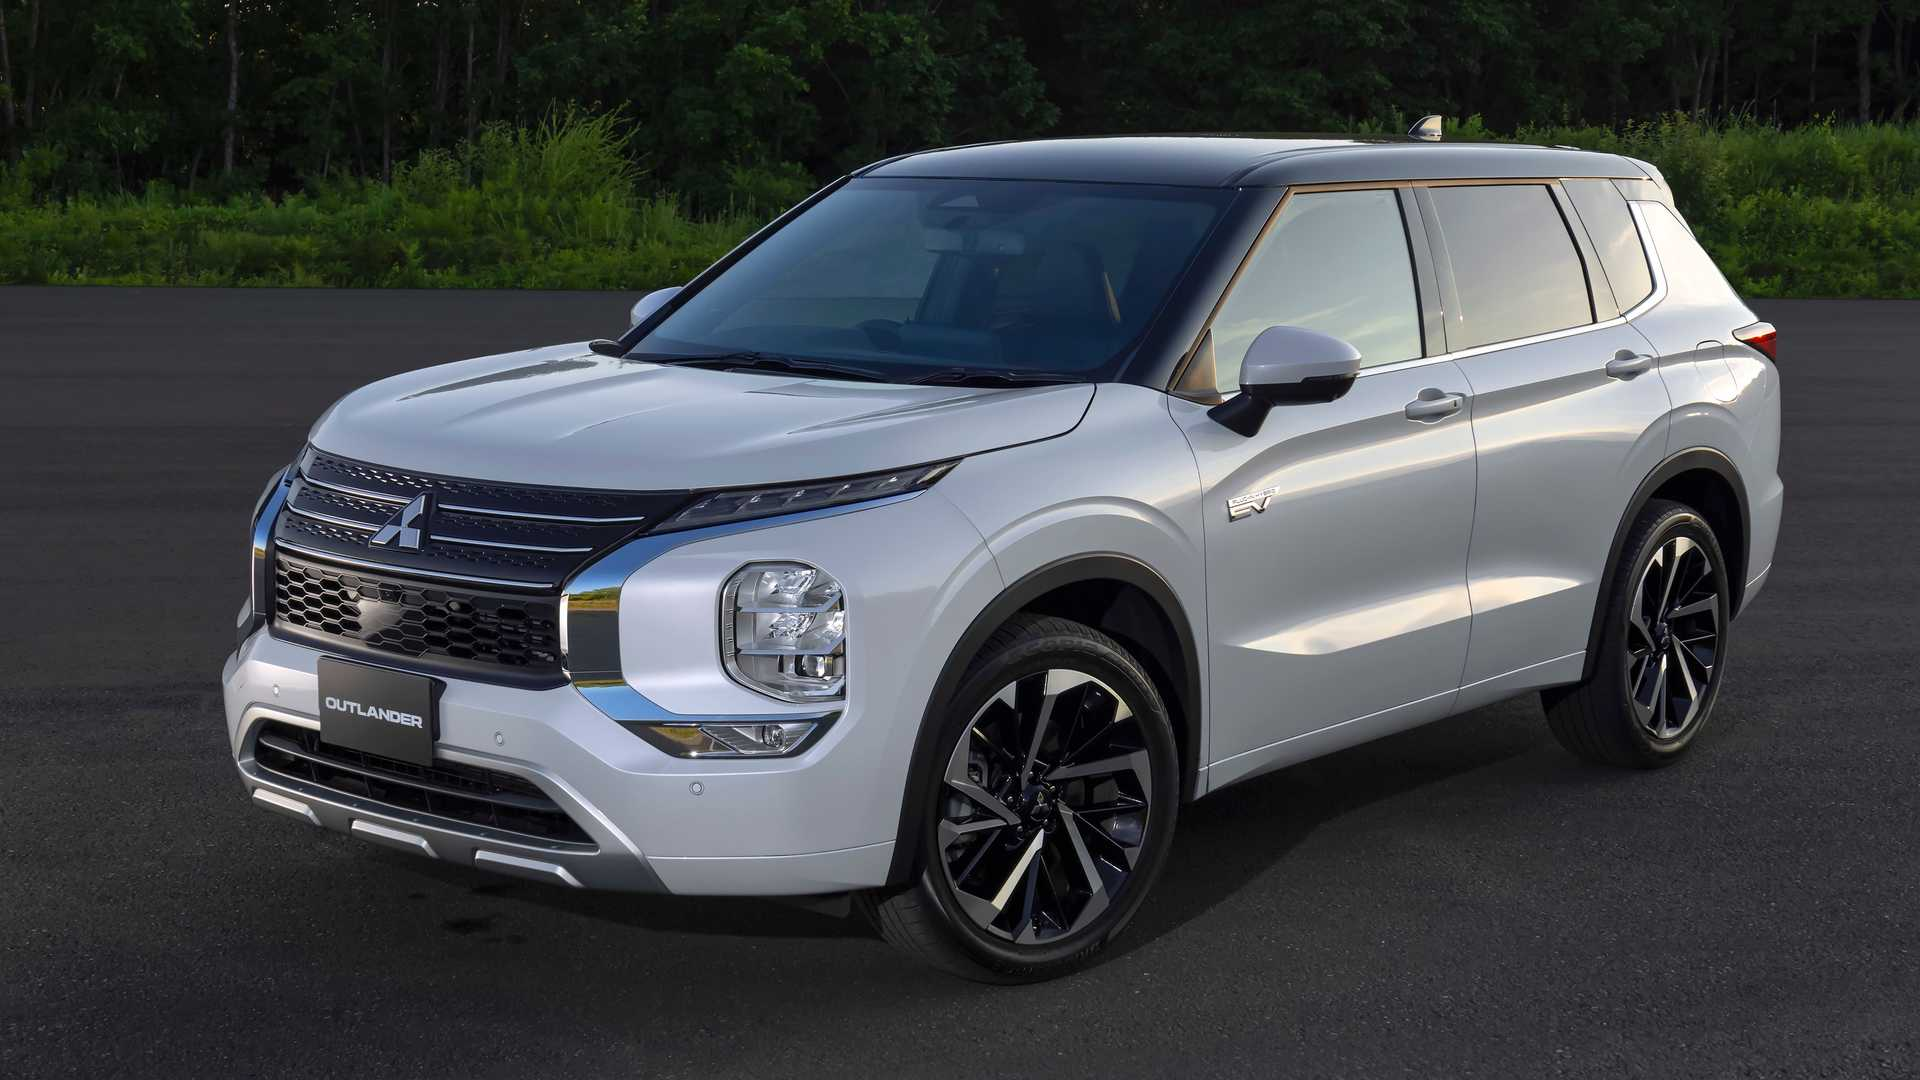 Mitsubishi announced today that the premiere of a plug-in hybrid Outlander SUV would take place on Thursday, October 28, 2021. In the meantime, here are some new images showing the car from the outside and inside.